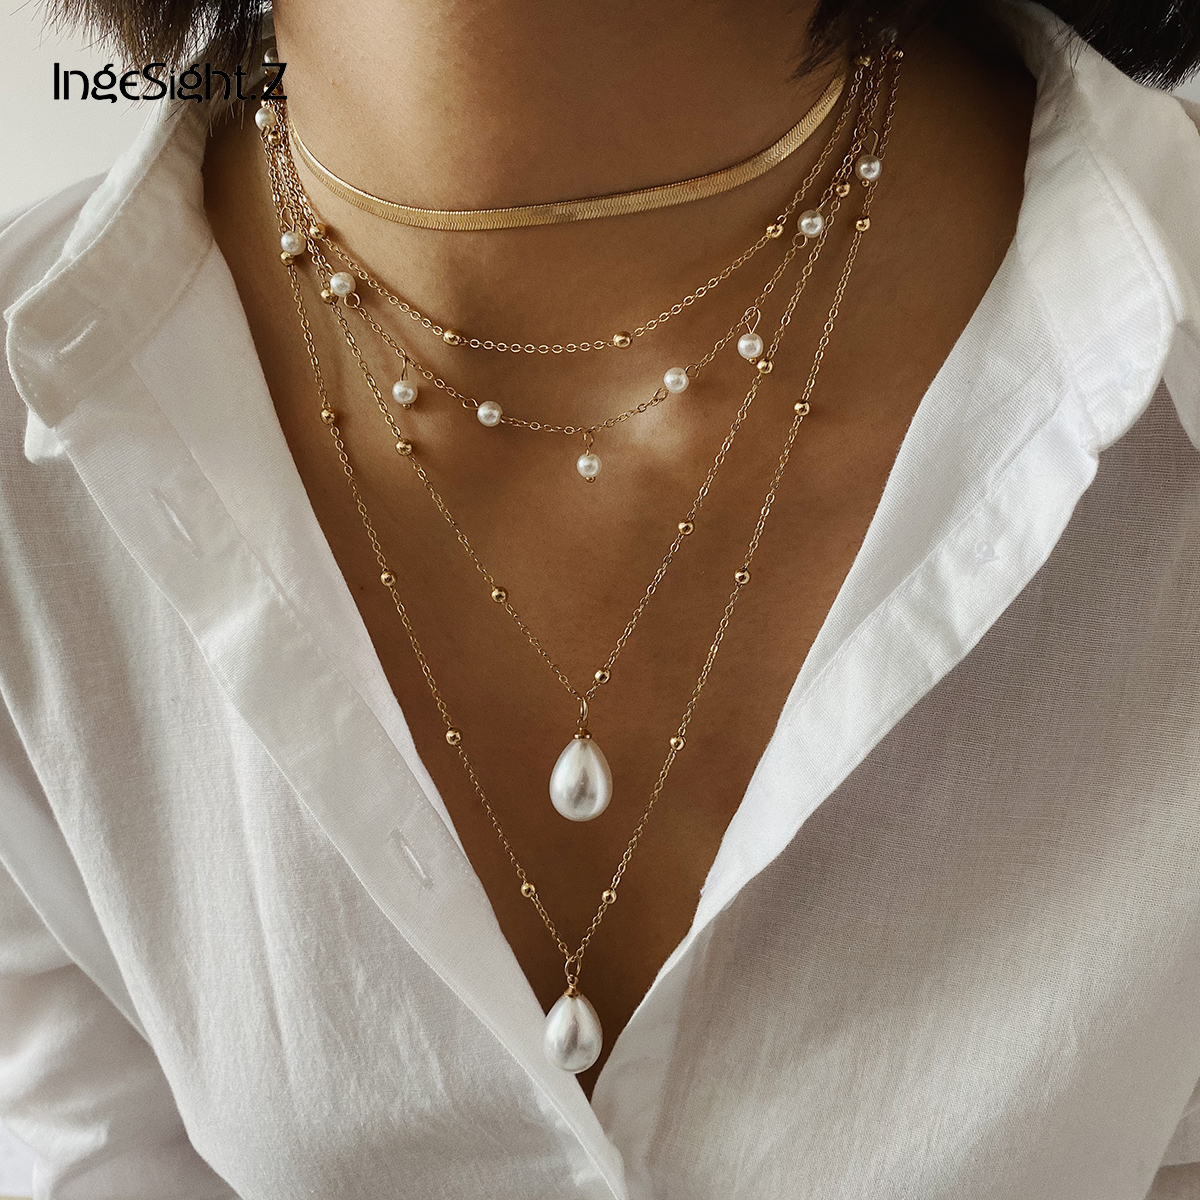 IngeSight.Z Bohemian Multi Layer Imitation Pearl Tassel Choker Necklace Collar Statement Pendant Necklace for Women Jewelry(China)